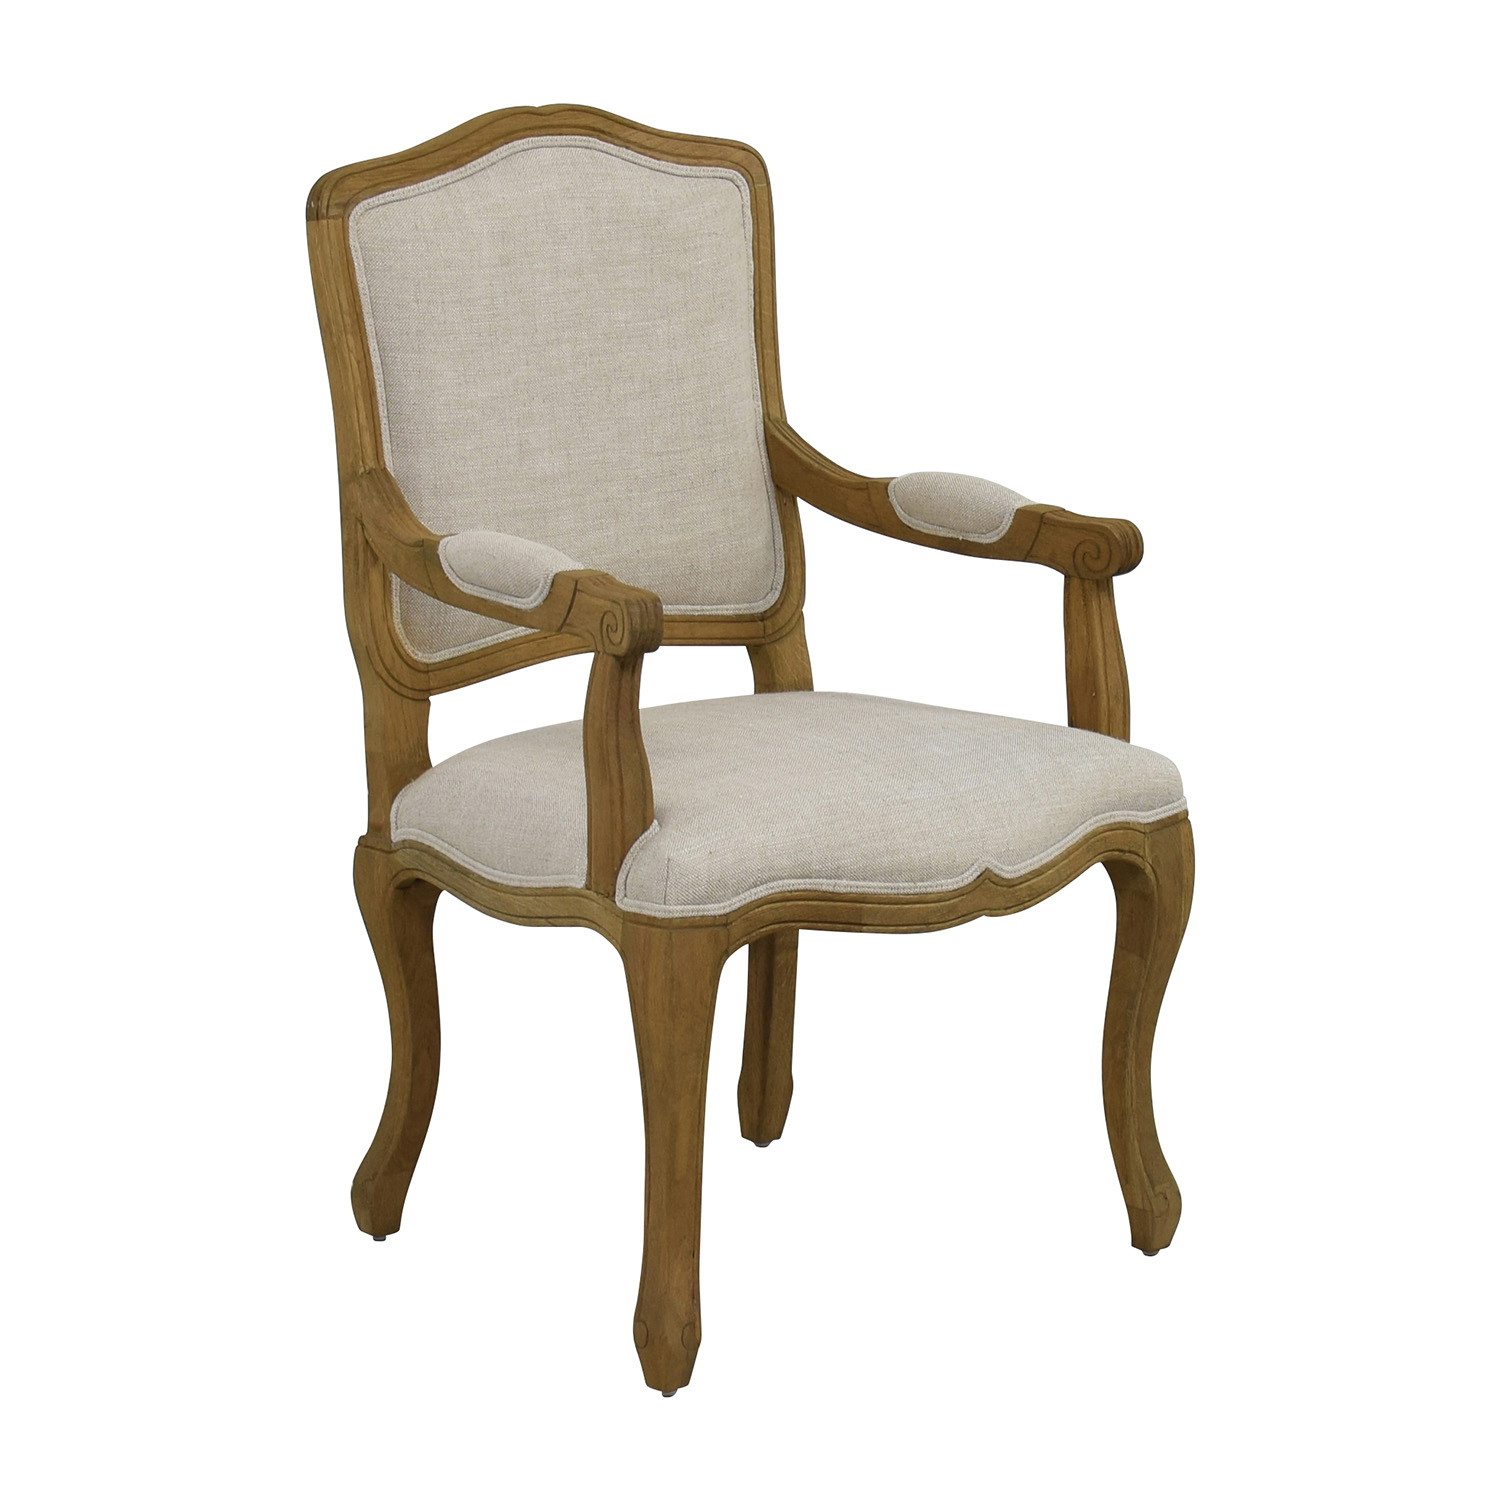 Chair Restoration 64 Off Restoration Hardware Restoration Hardware